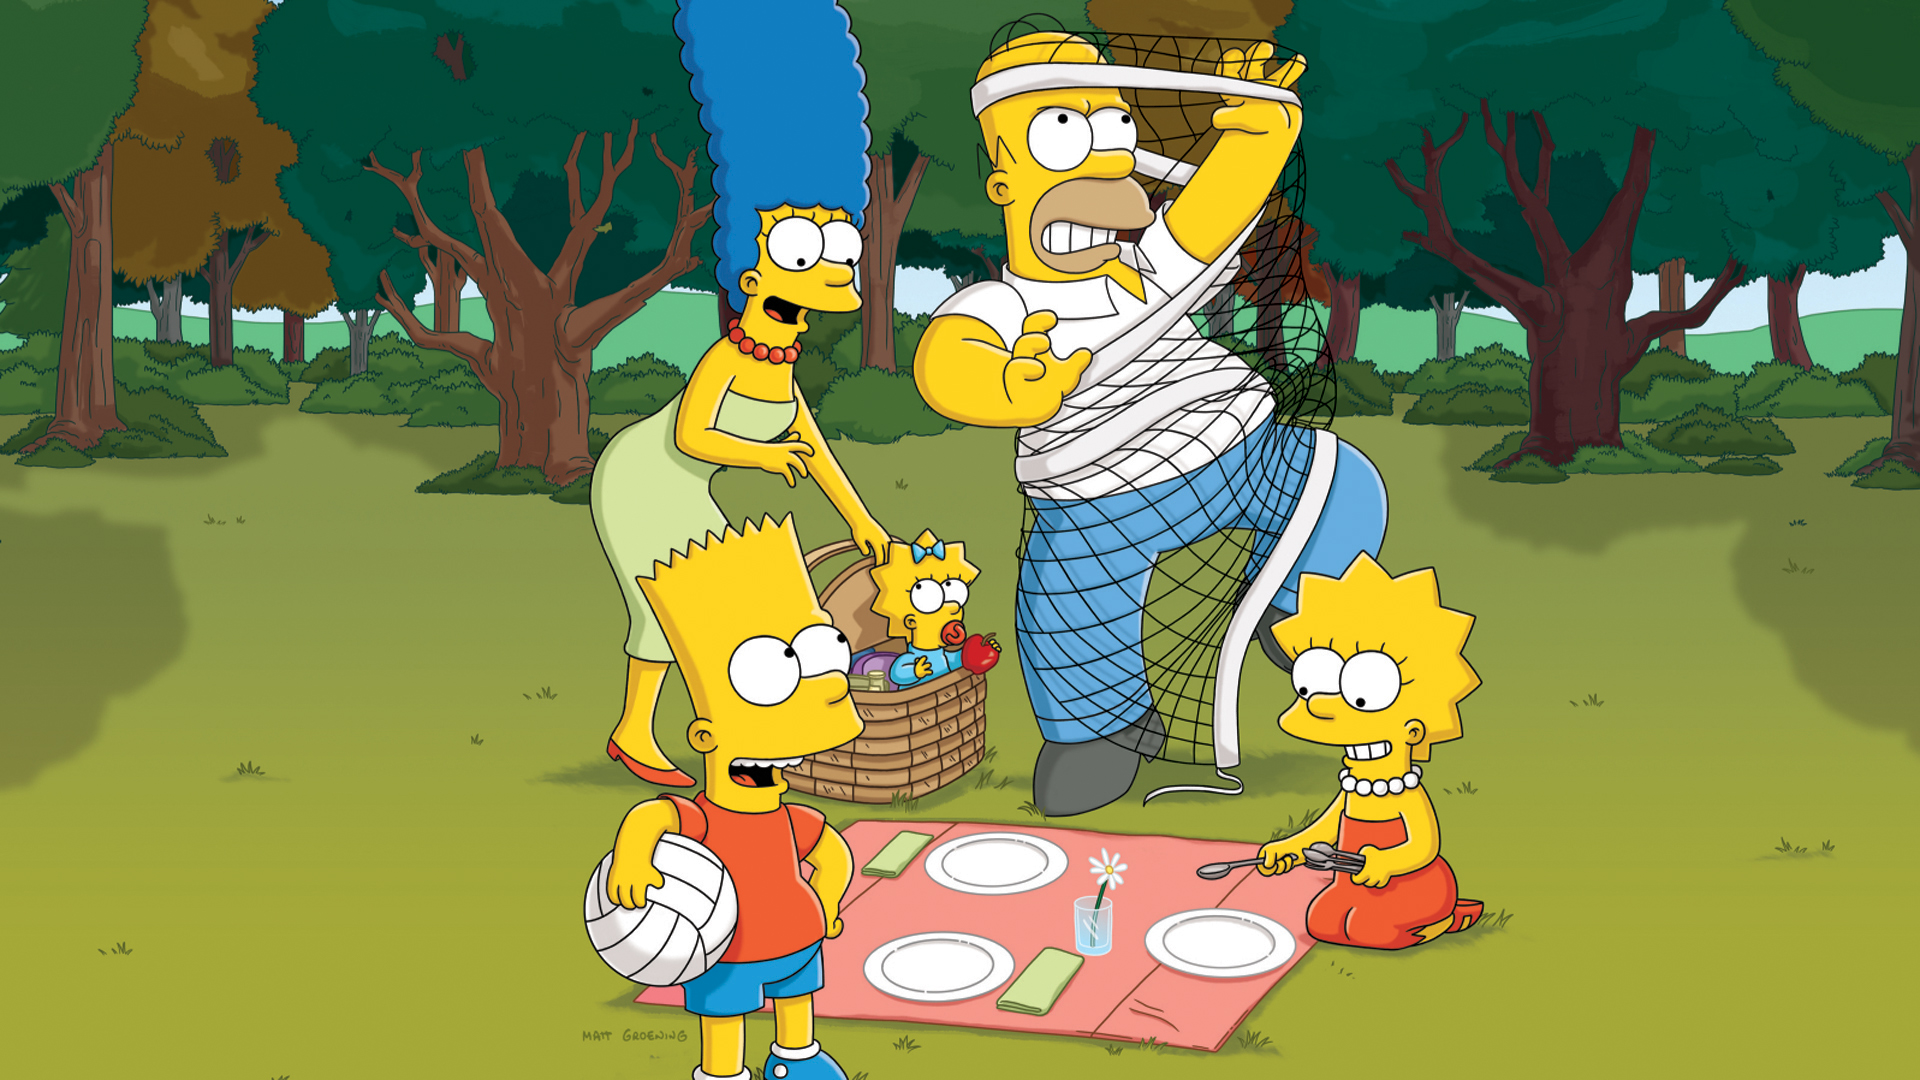 Download The Simpson Wallpaper Image Picture Full Size